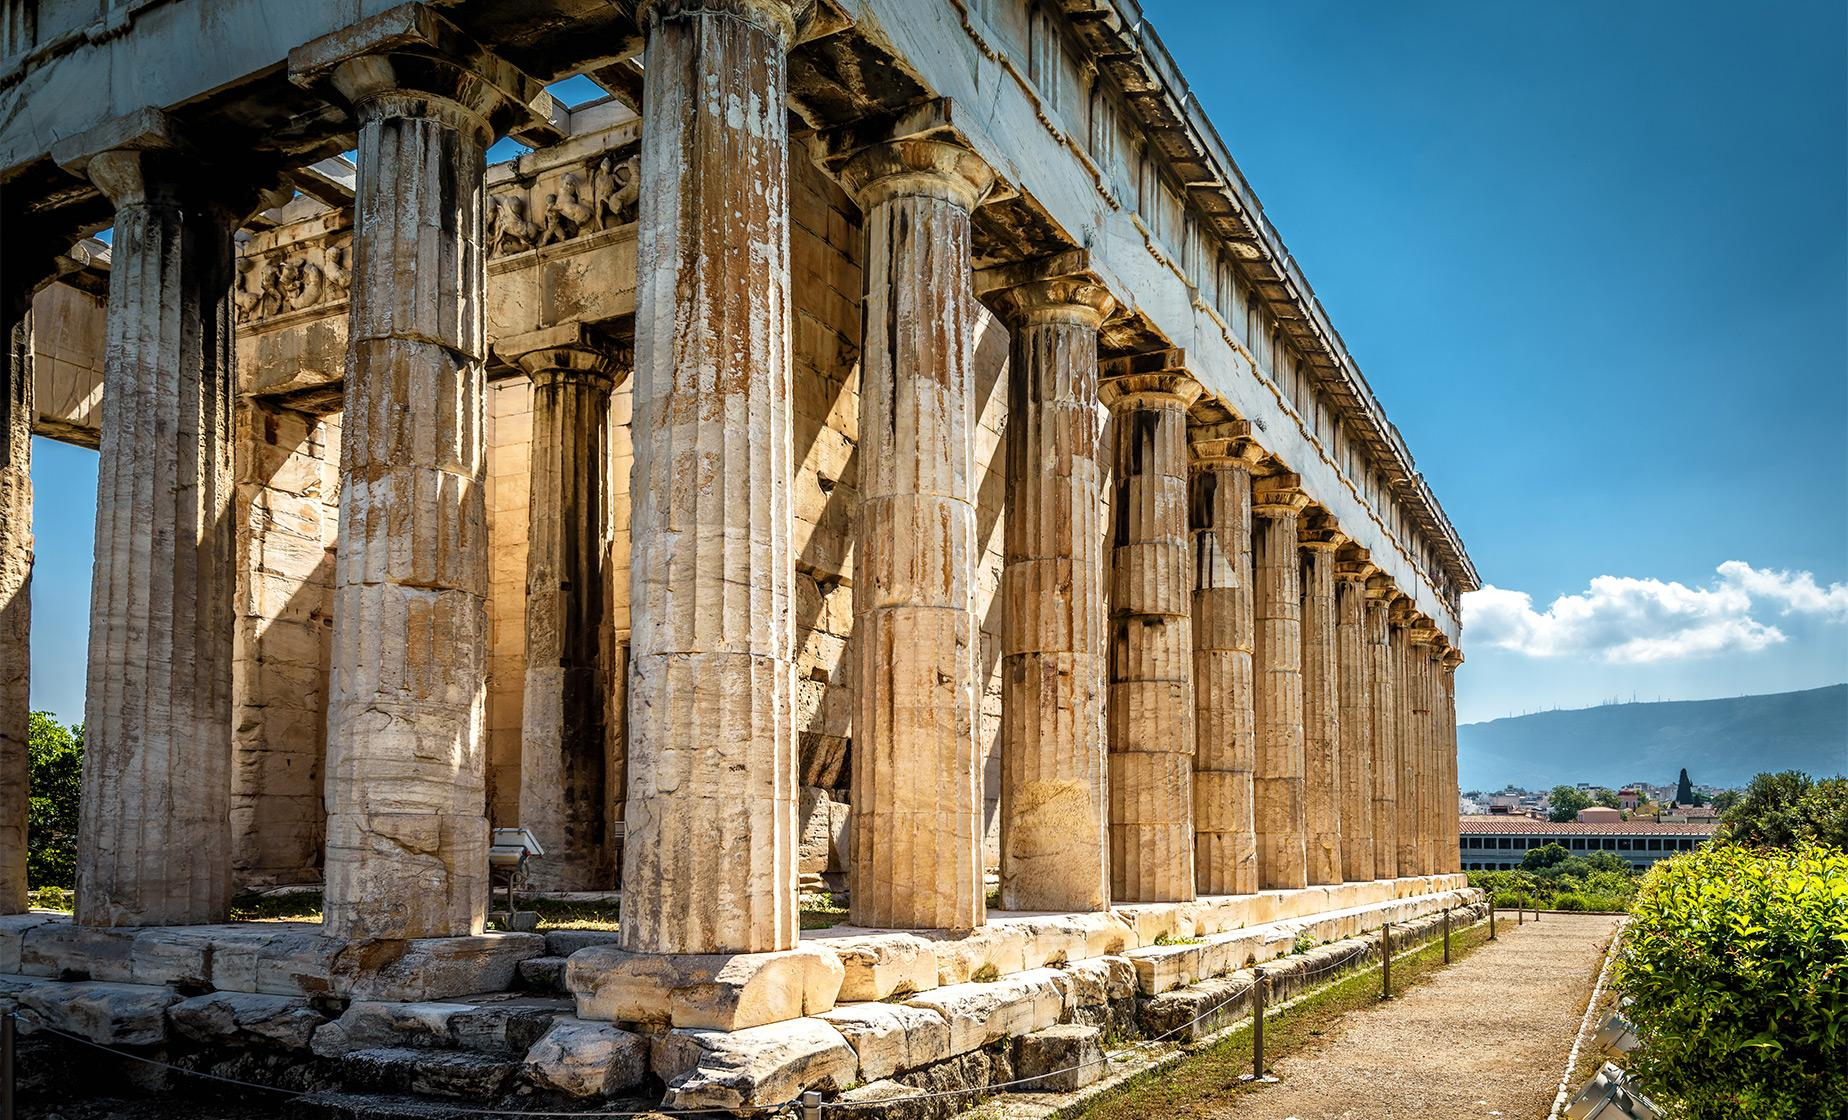 Athens Mystery Tour by Trikke